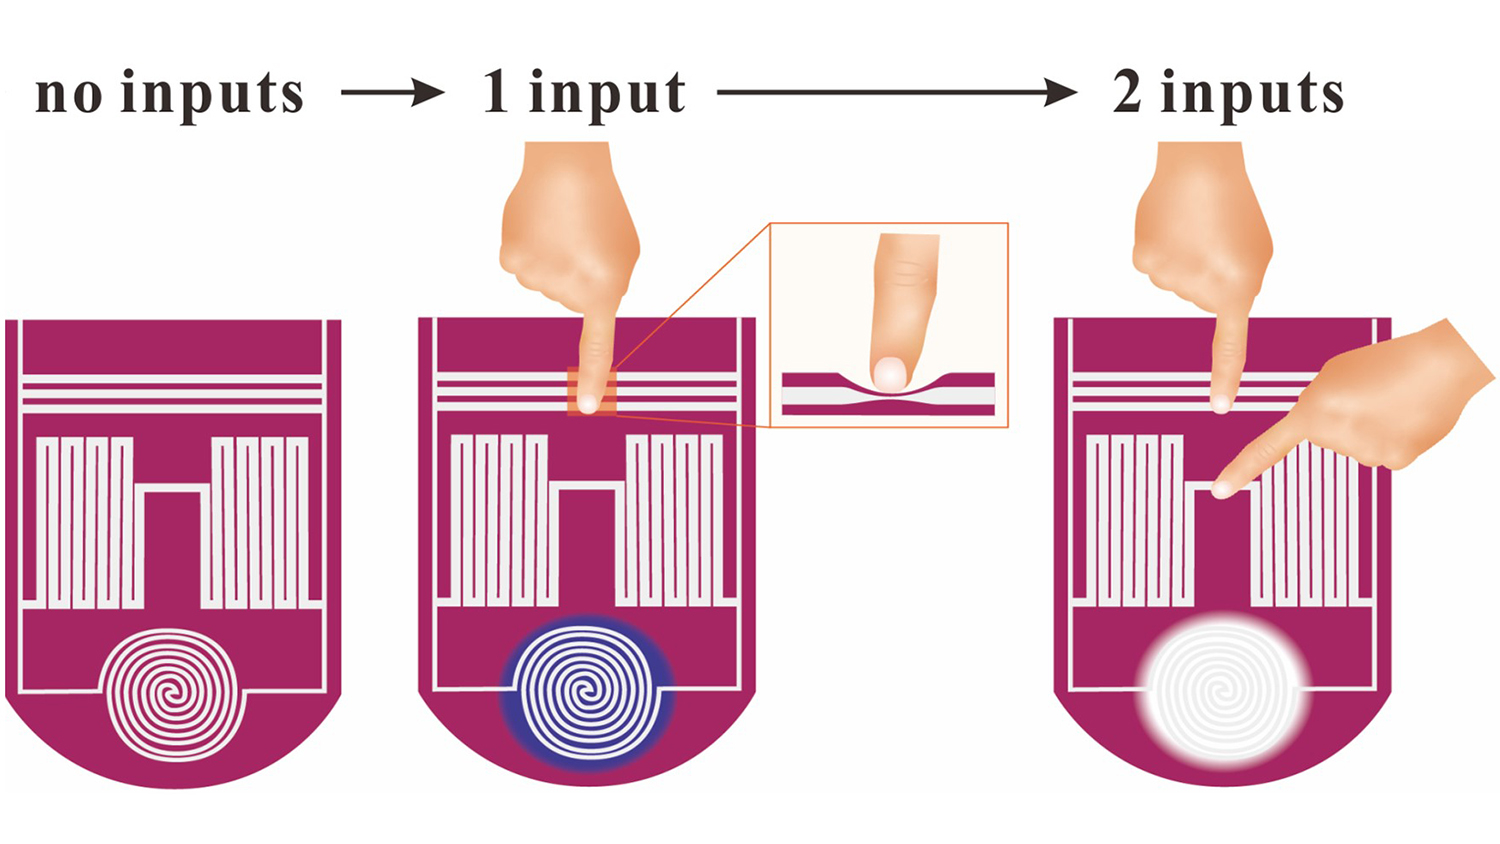 image shows material lighting up in different colors when touched by one hand versus two hands